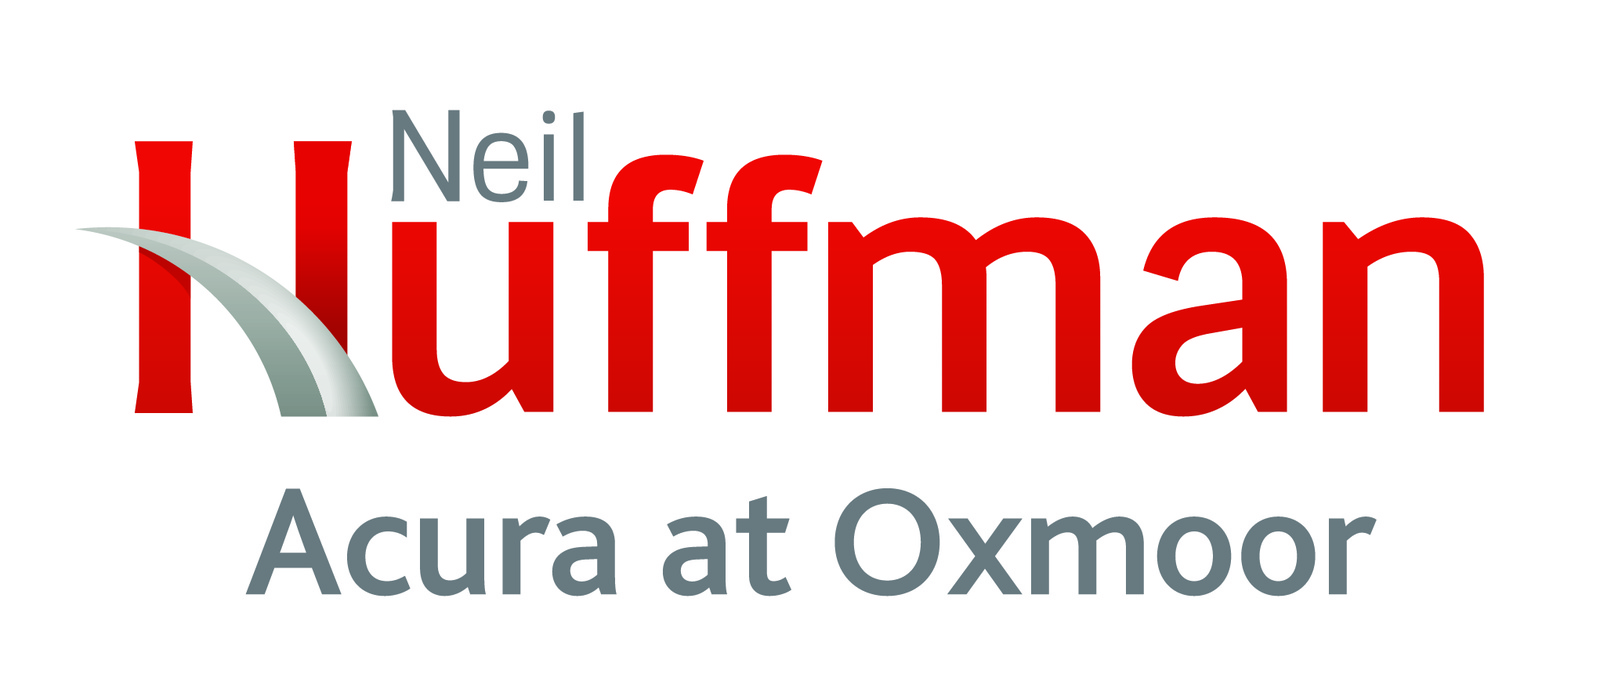 Neil Huffman Acura At Oxmoor - Louisville, KY: Read Consumer reviews